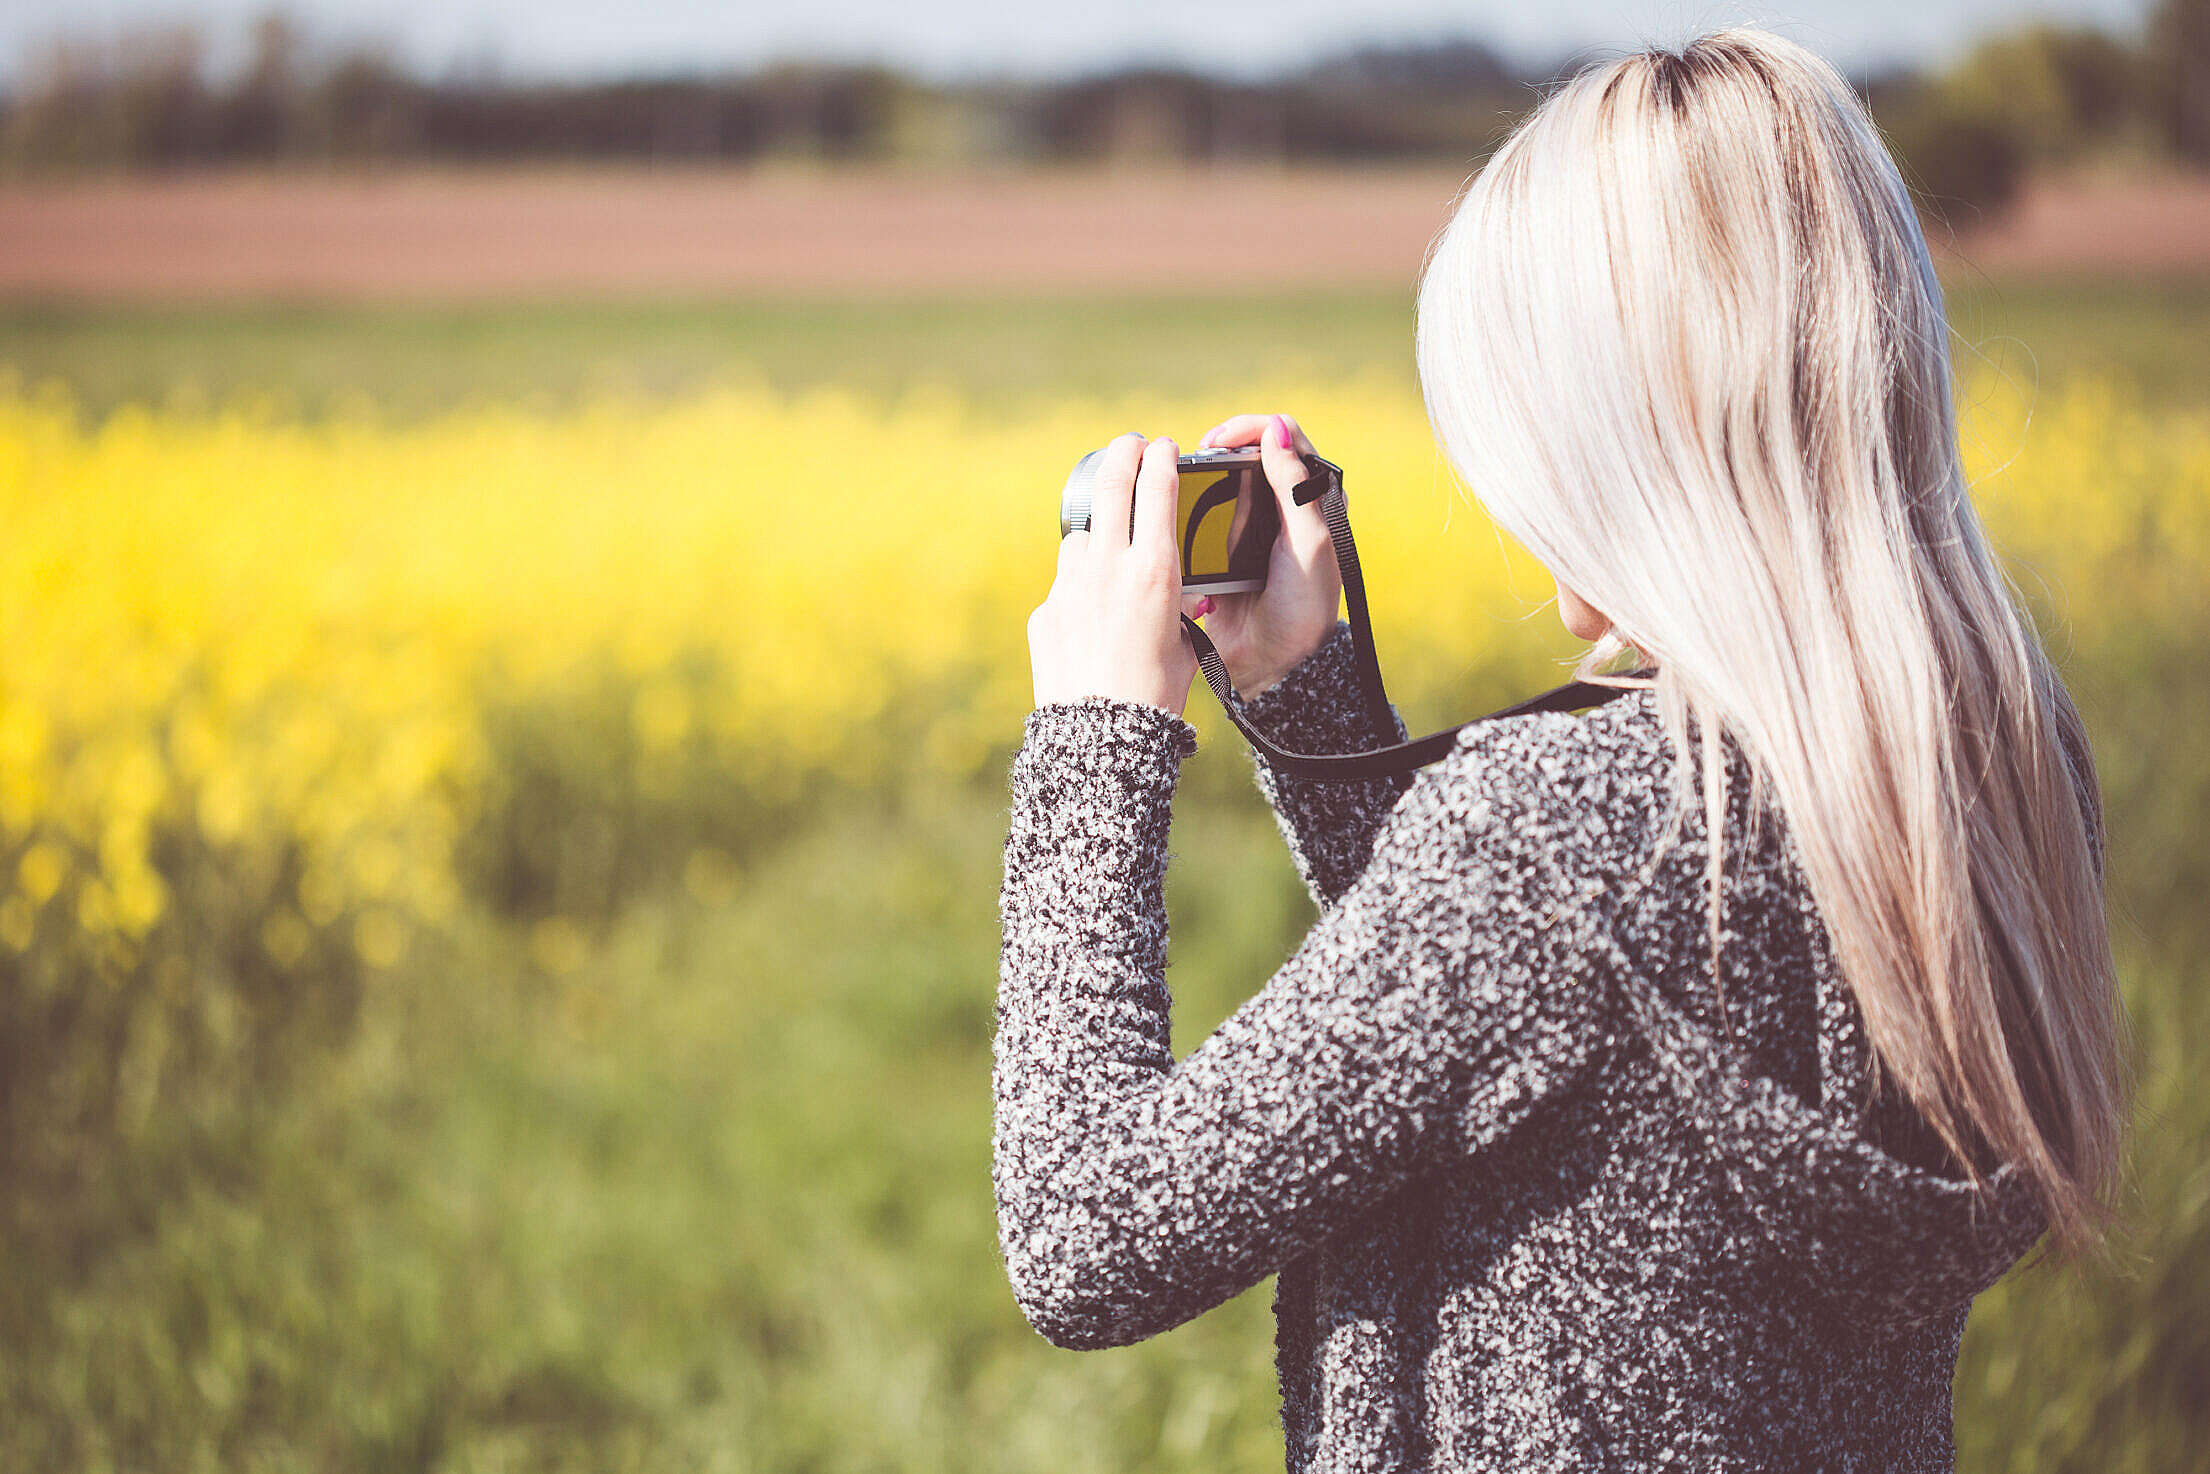 Girl Taking a Photo in Nature Free Stock Photo